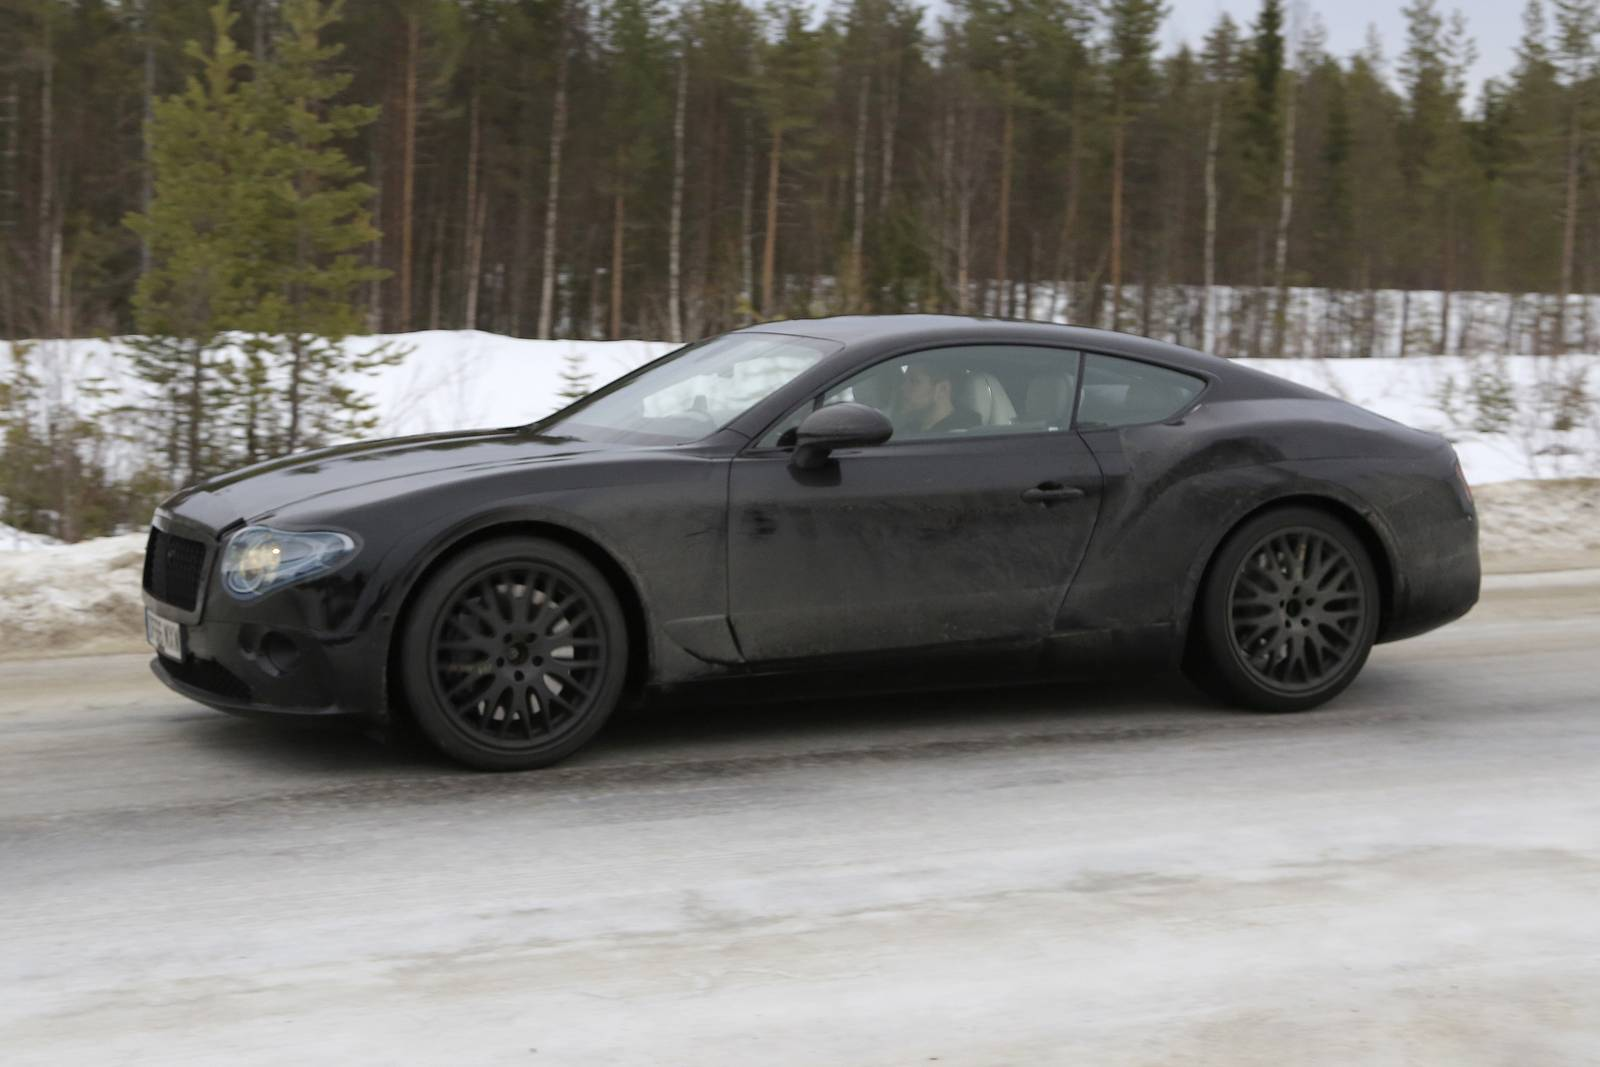 2019 Bentley Continental Gt Latest Spy Shots Less Camo